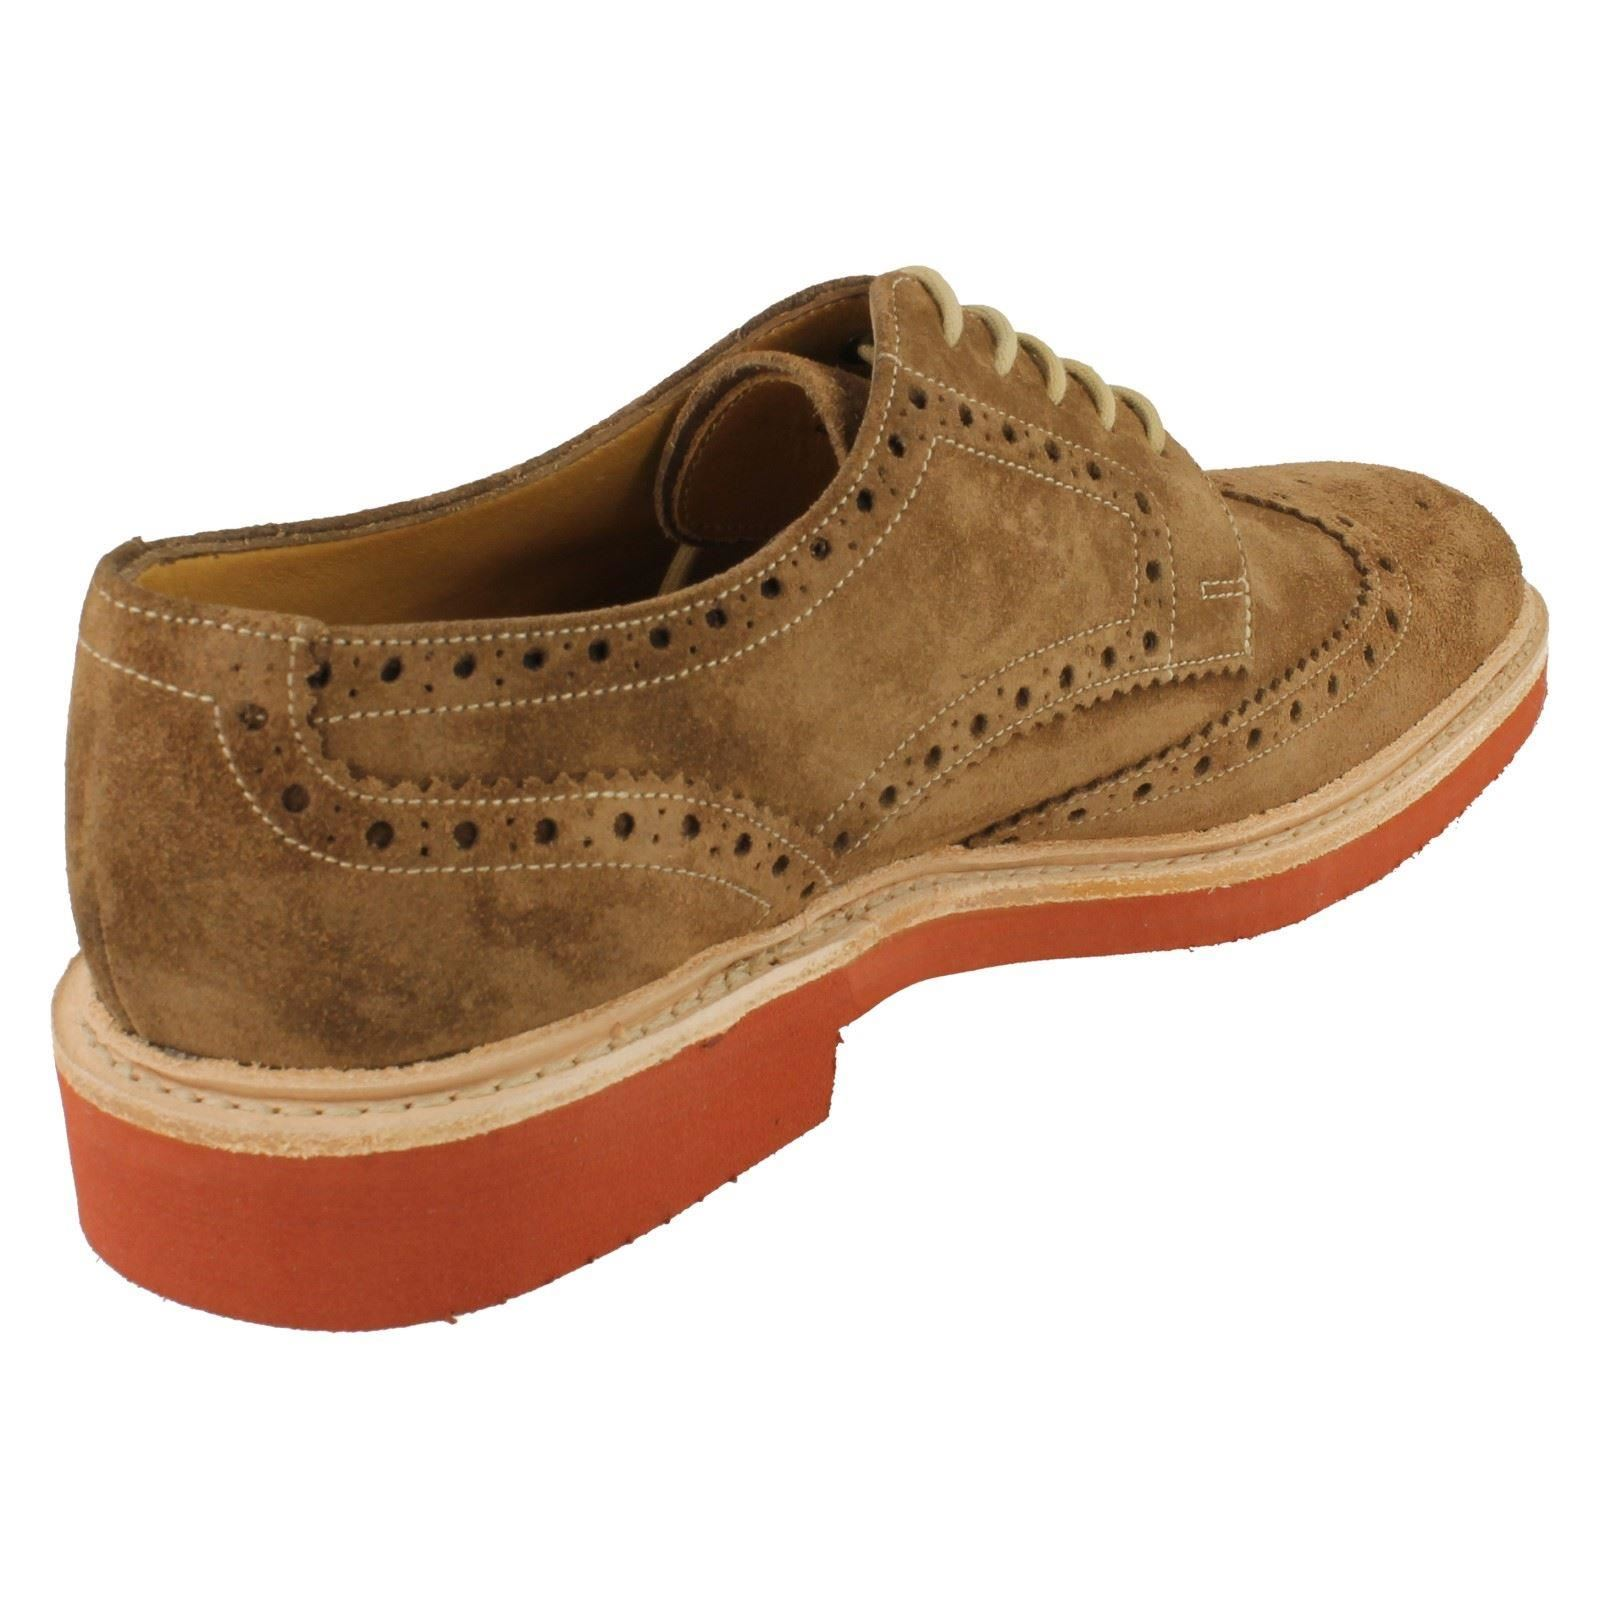 Mens Loake Casual Suede Suede Suede Shoes Fitting F Style - Logan 288195